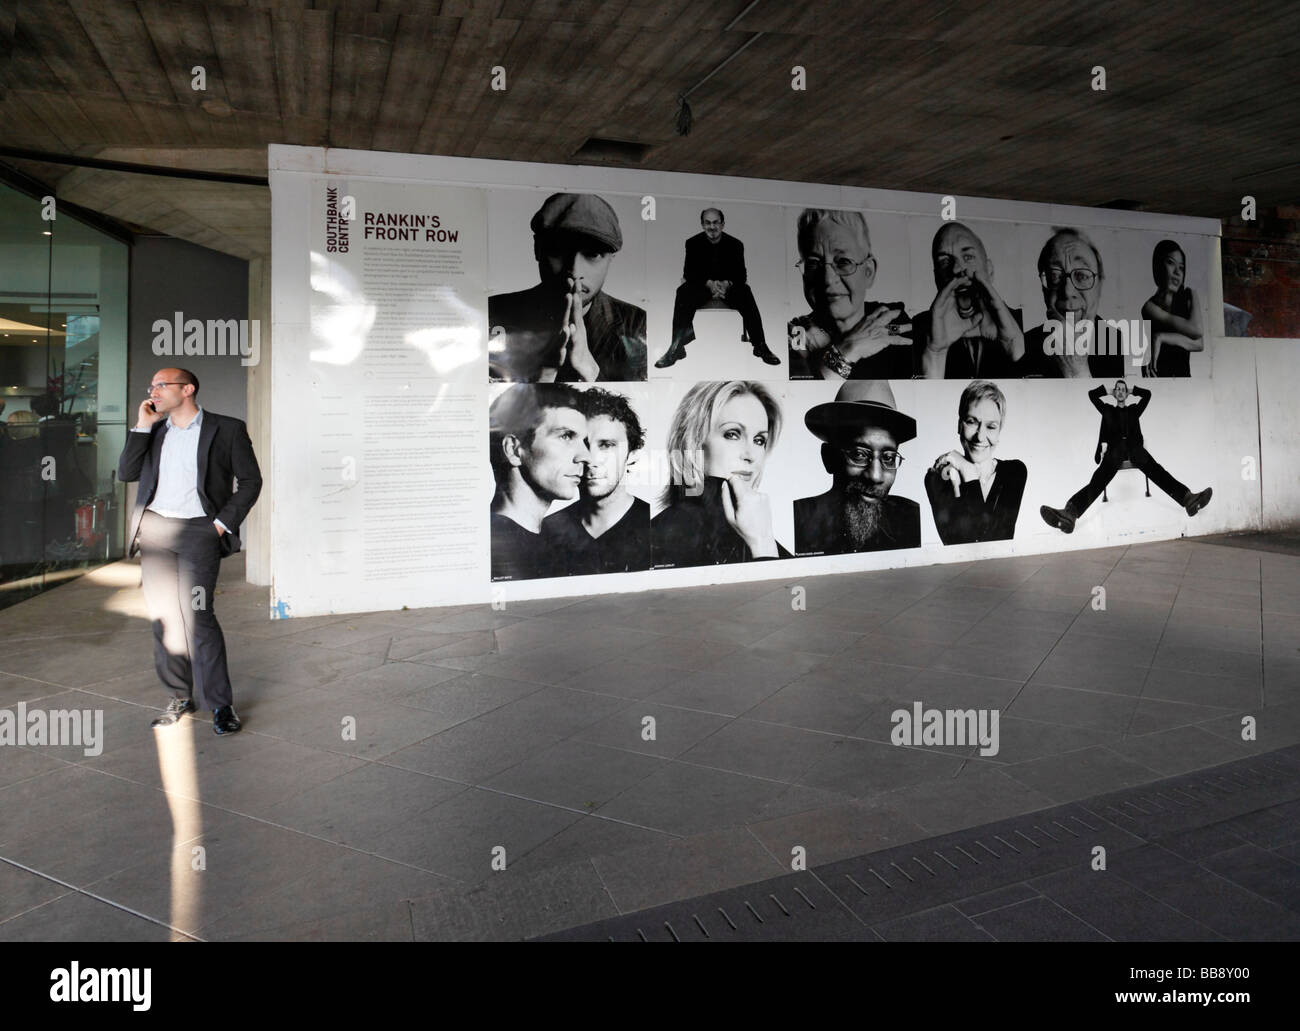 Southbank Centre, Rankins Front row poster. South Bank, London, England, UK. - Stock Image